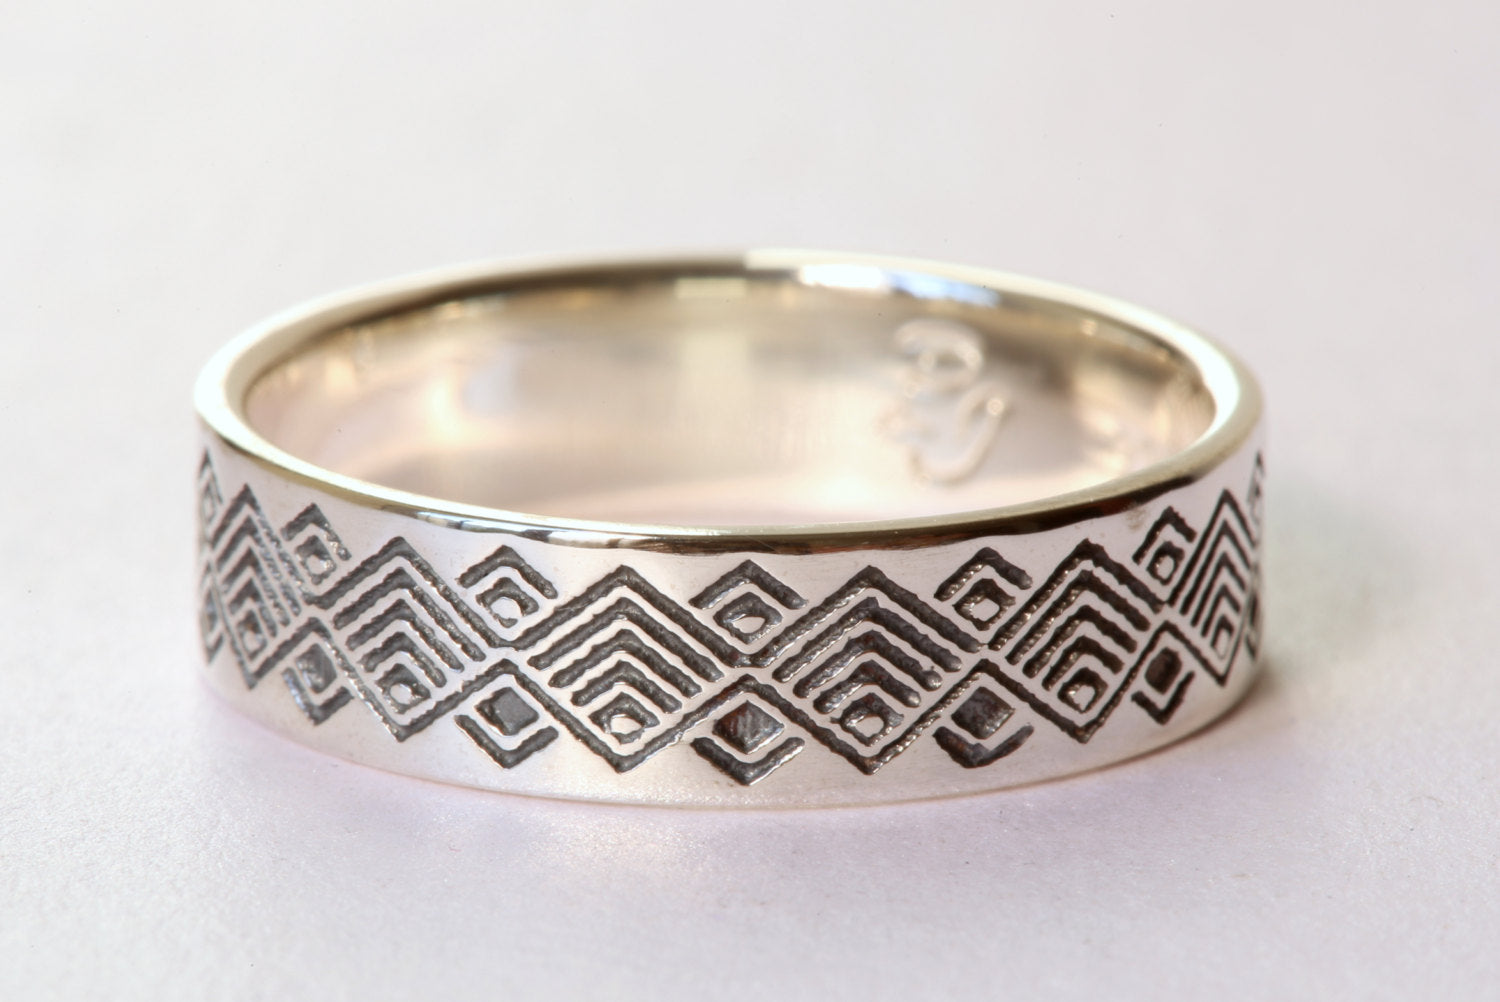 Men's Wedding Band, Oxidized Silver Ring, Oxidized Wedding Band, Pattern Ring, Mens Ring Size 9.5